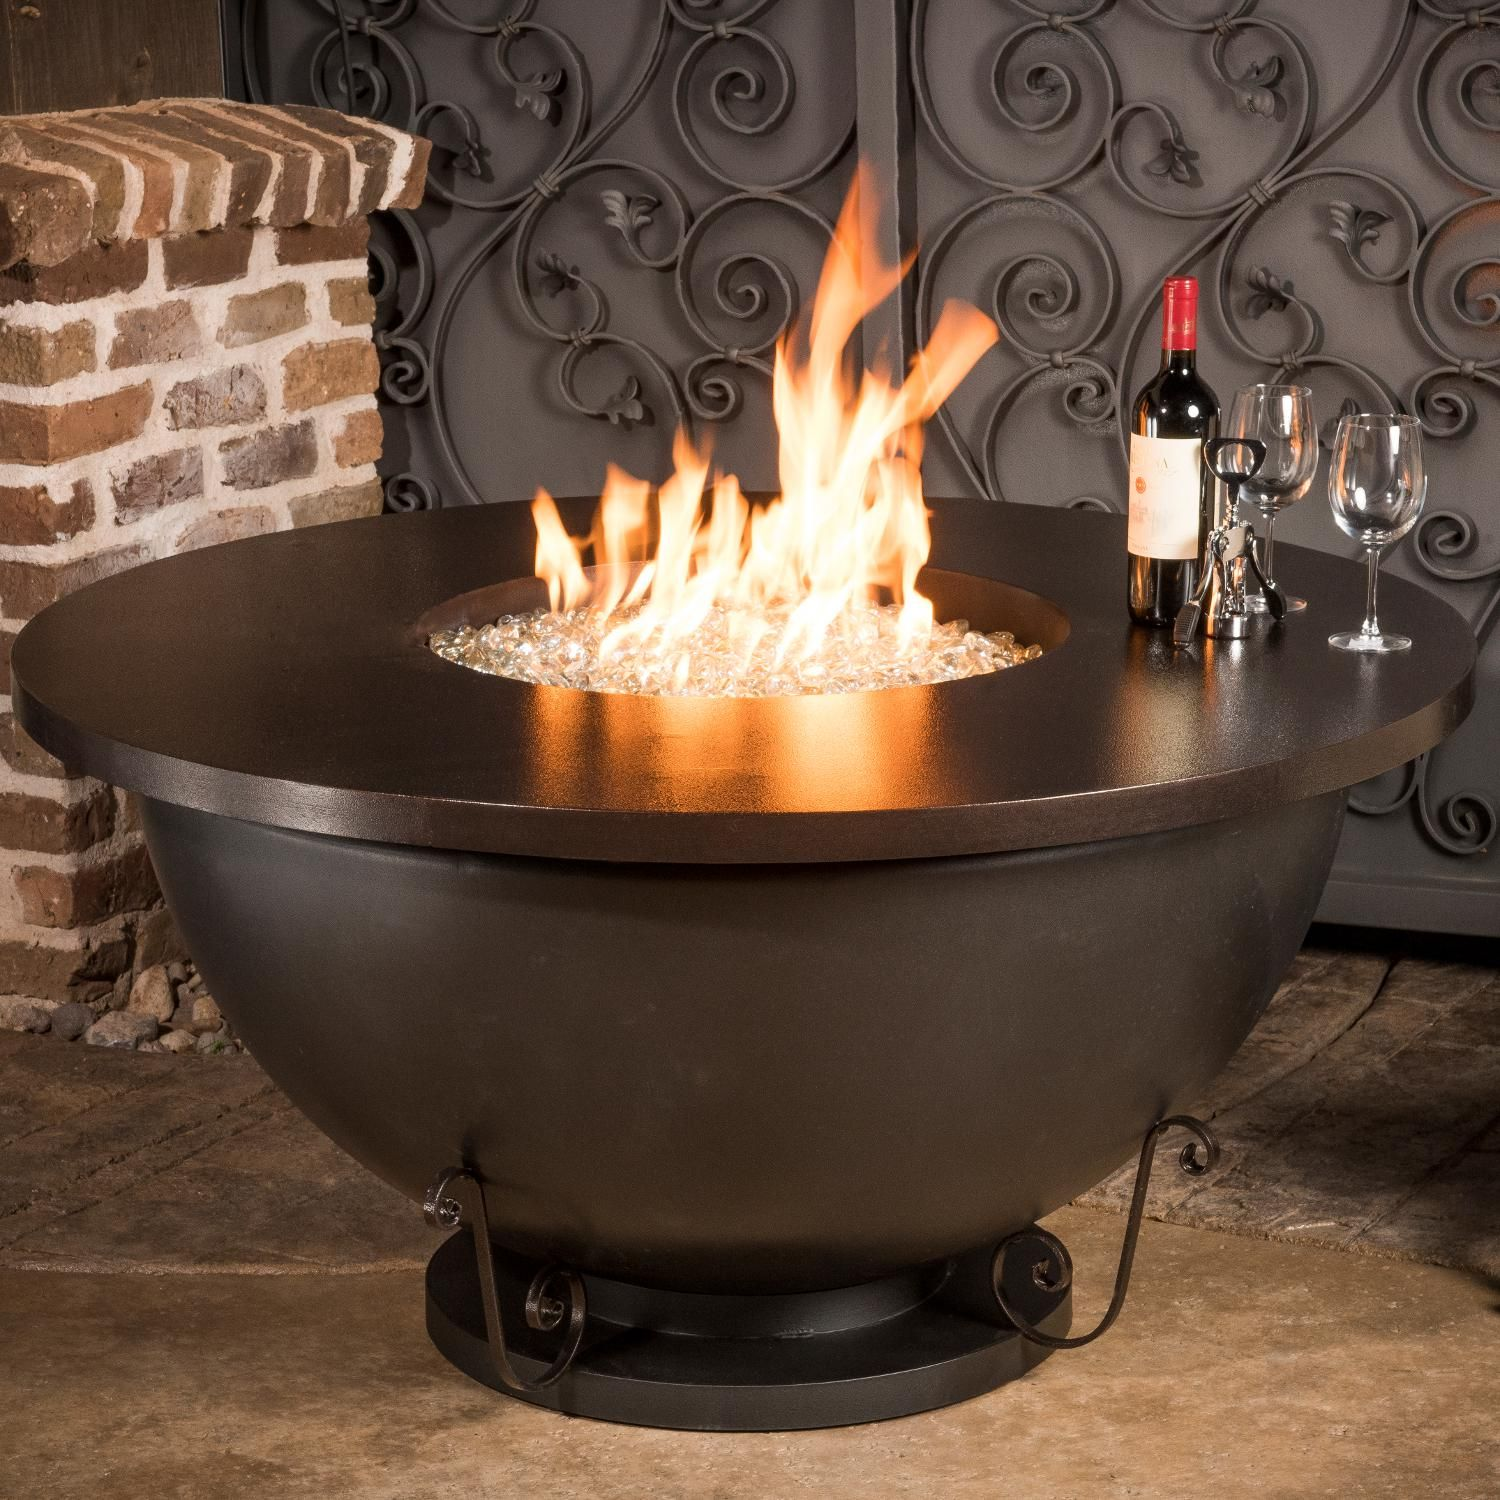 Cc Products Opulent Bowl 48 Inch Round Natural Gas Fire Table Black Finish C1043 Bbqguys Gas Fire Pit Table Fire Pit Bowl Outdoor Fire Pit